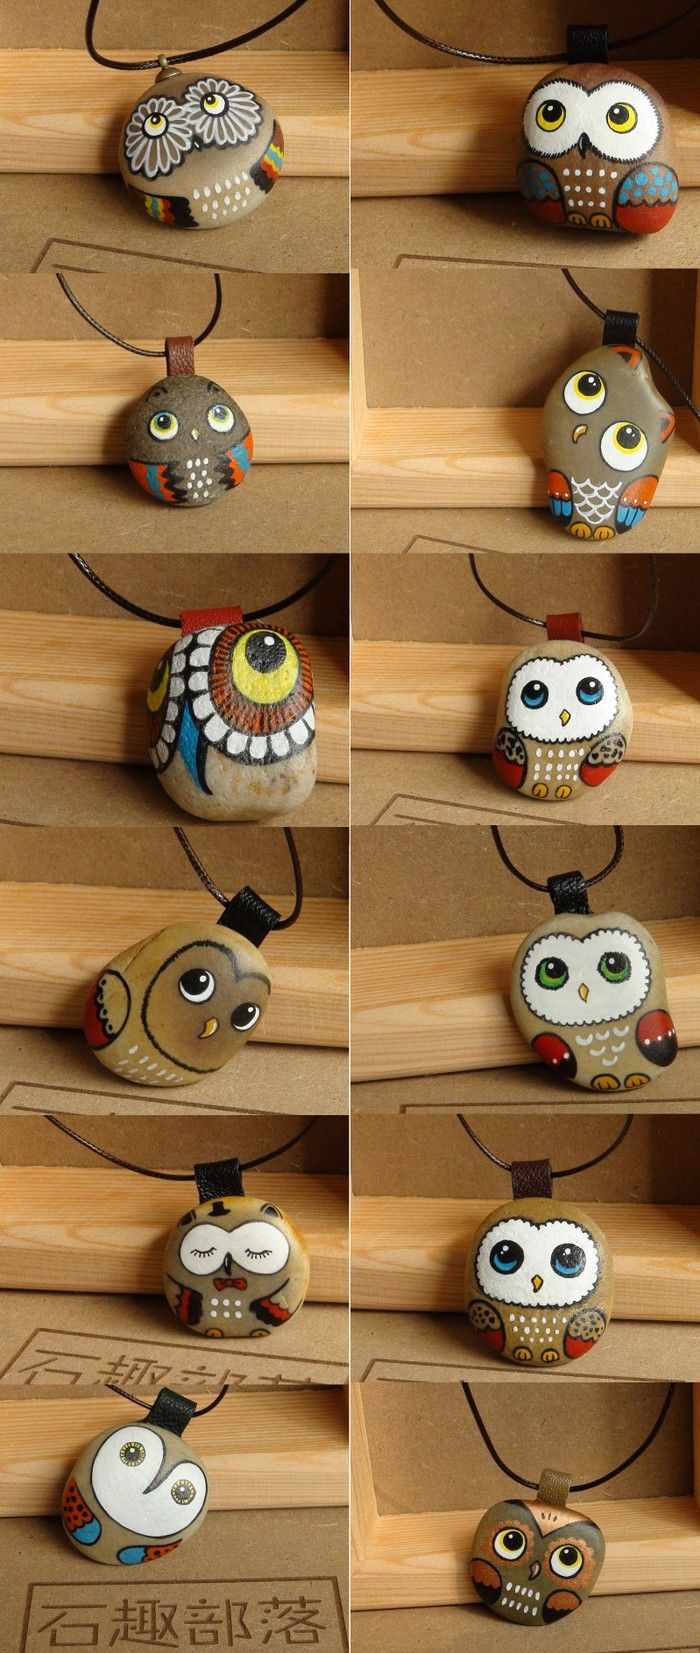 Adorable owls! Maybe you could use the original surface as the background color?